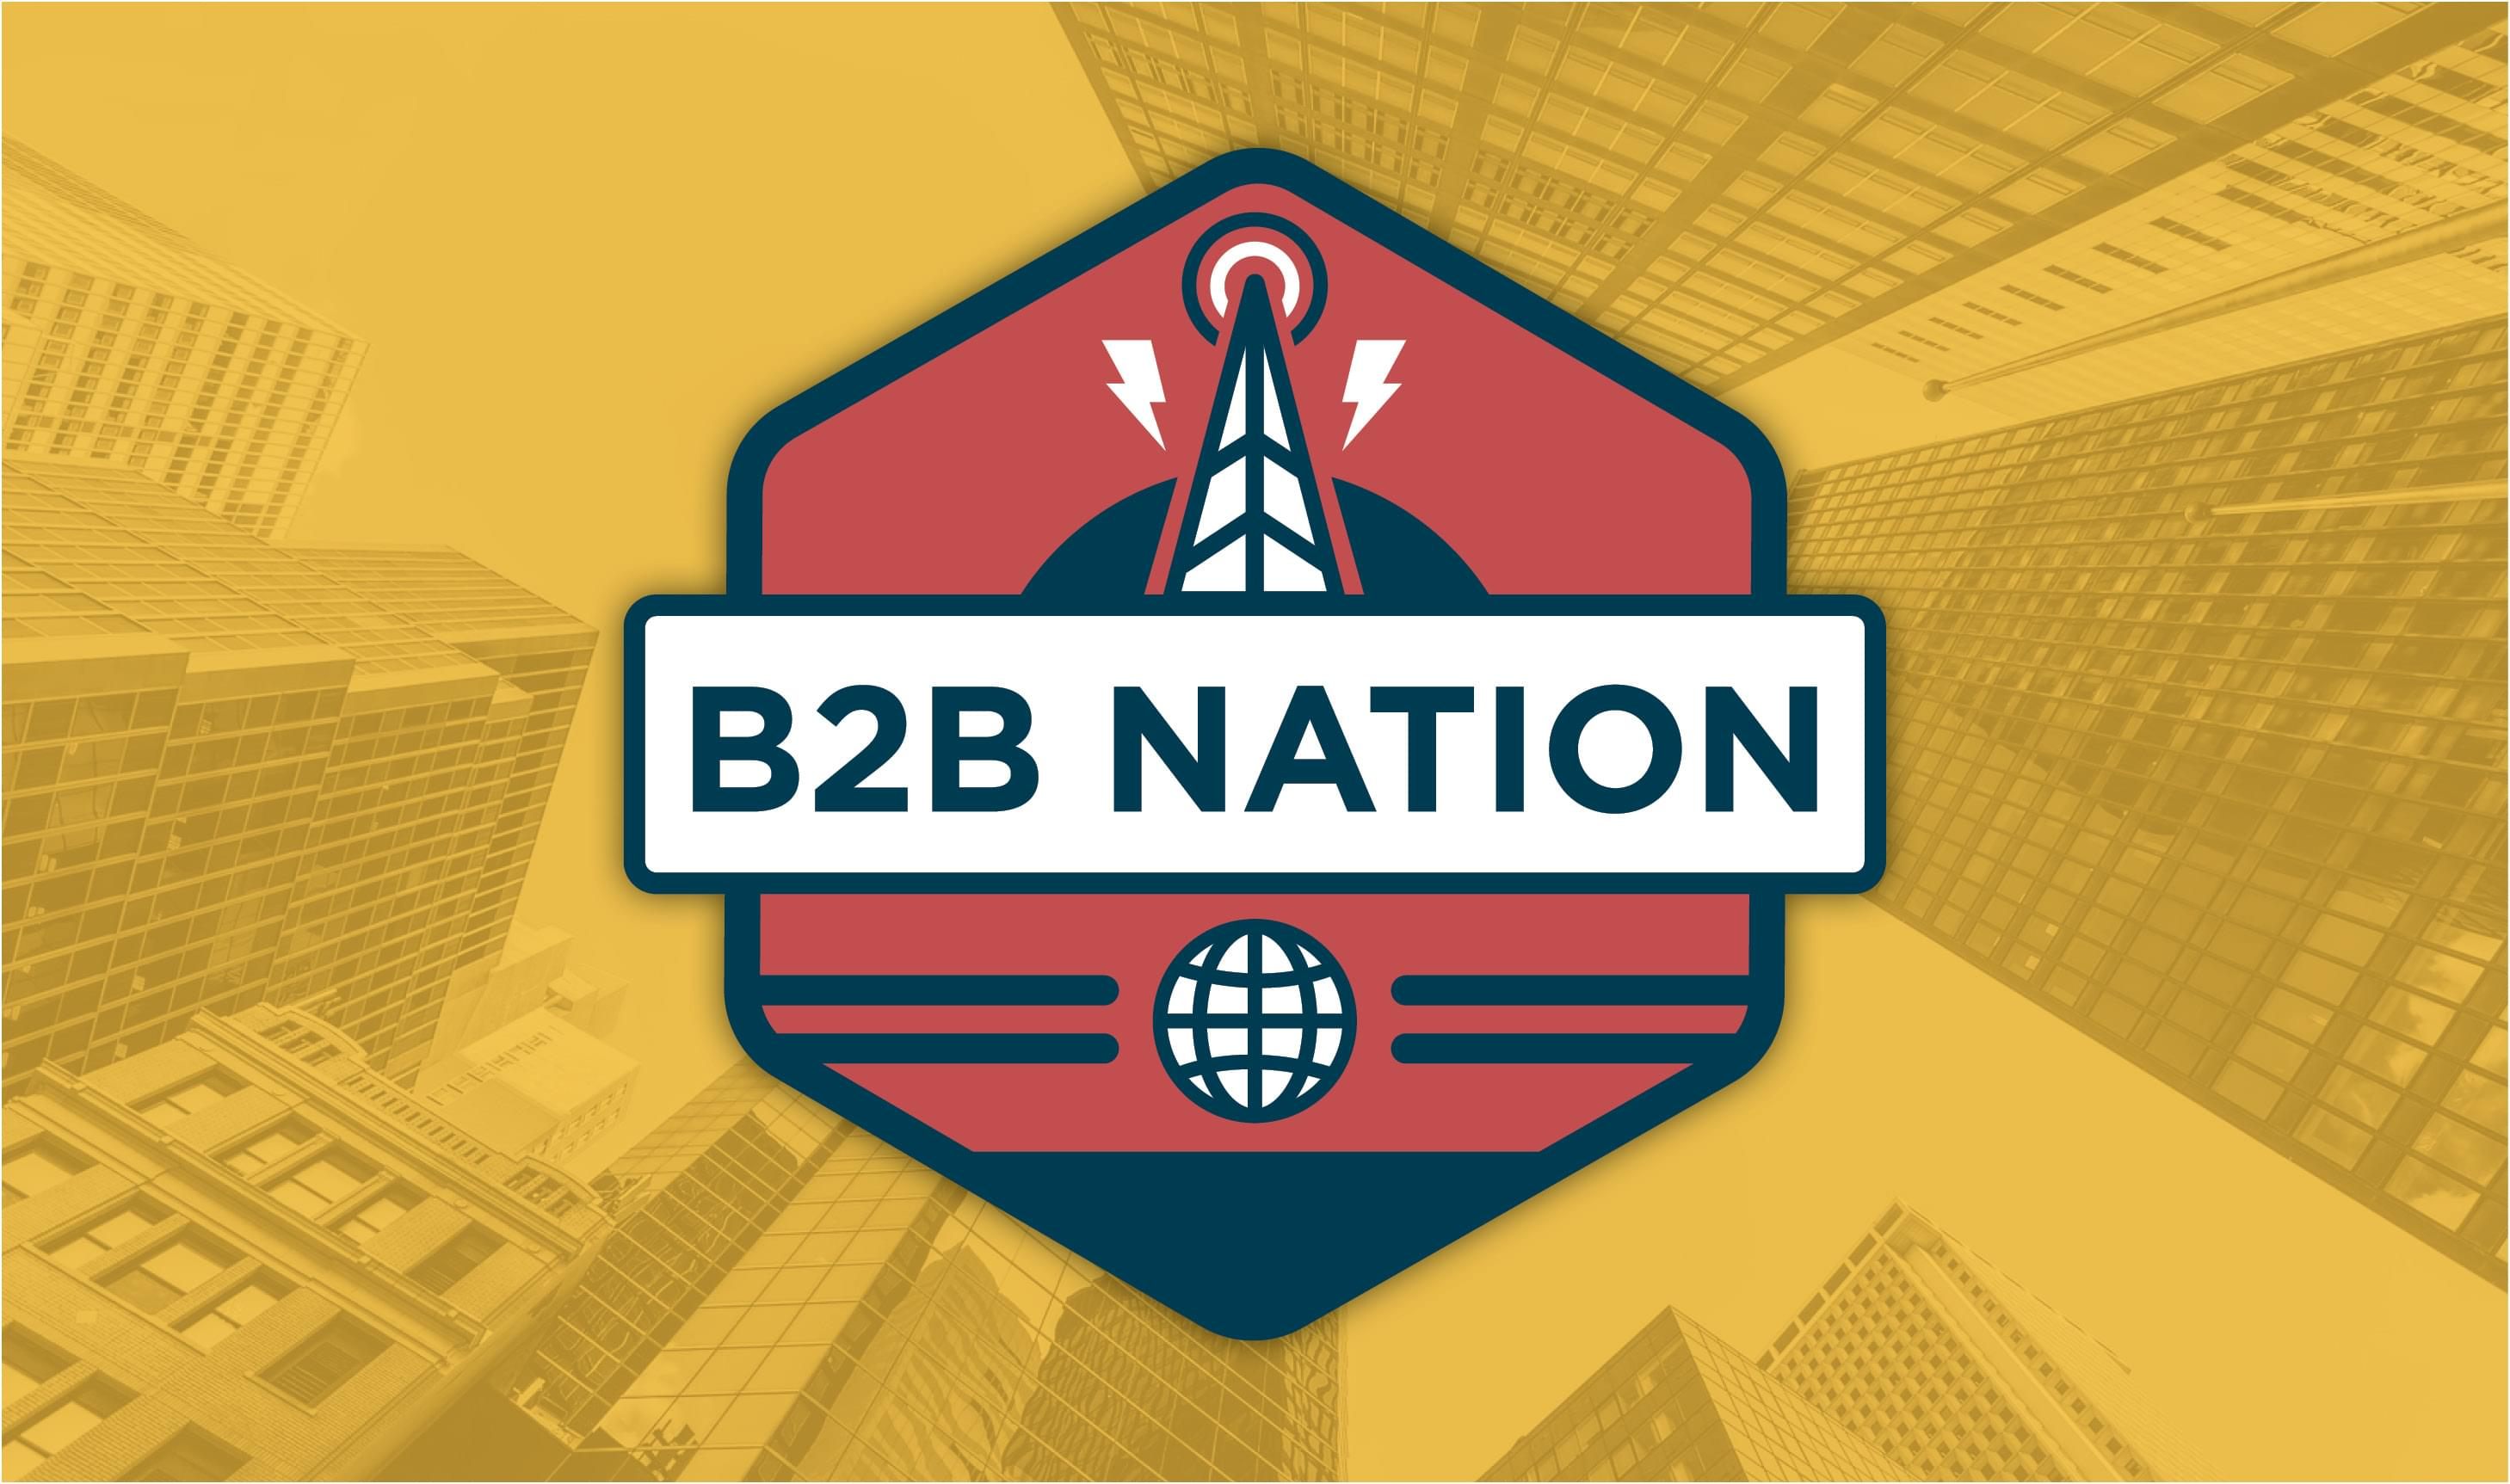 CEB Expert Roundtable: The Complexity of Modern B2B Sales